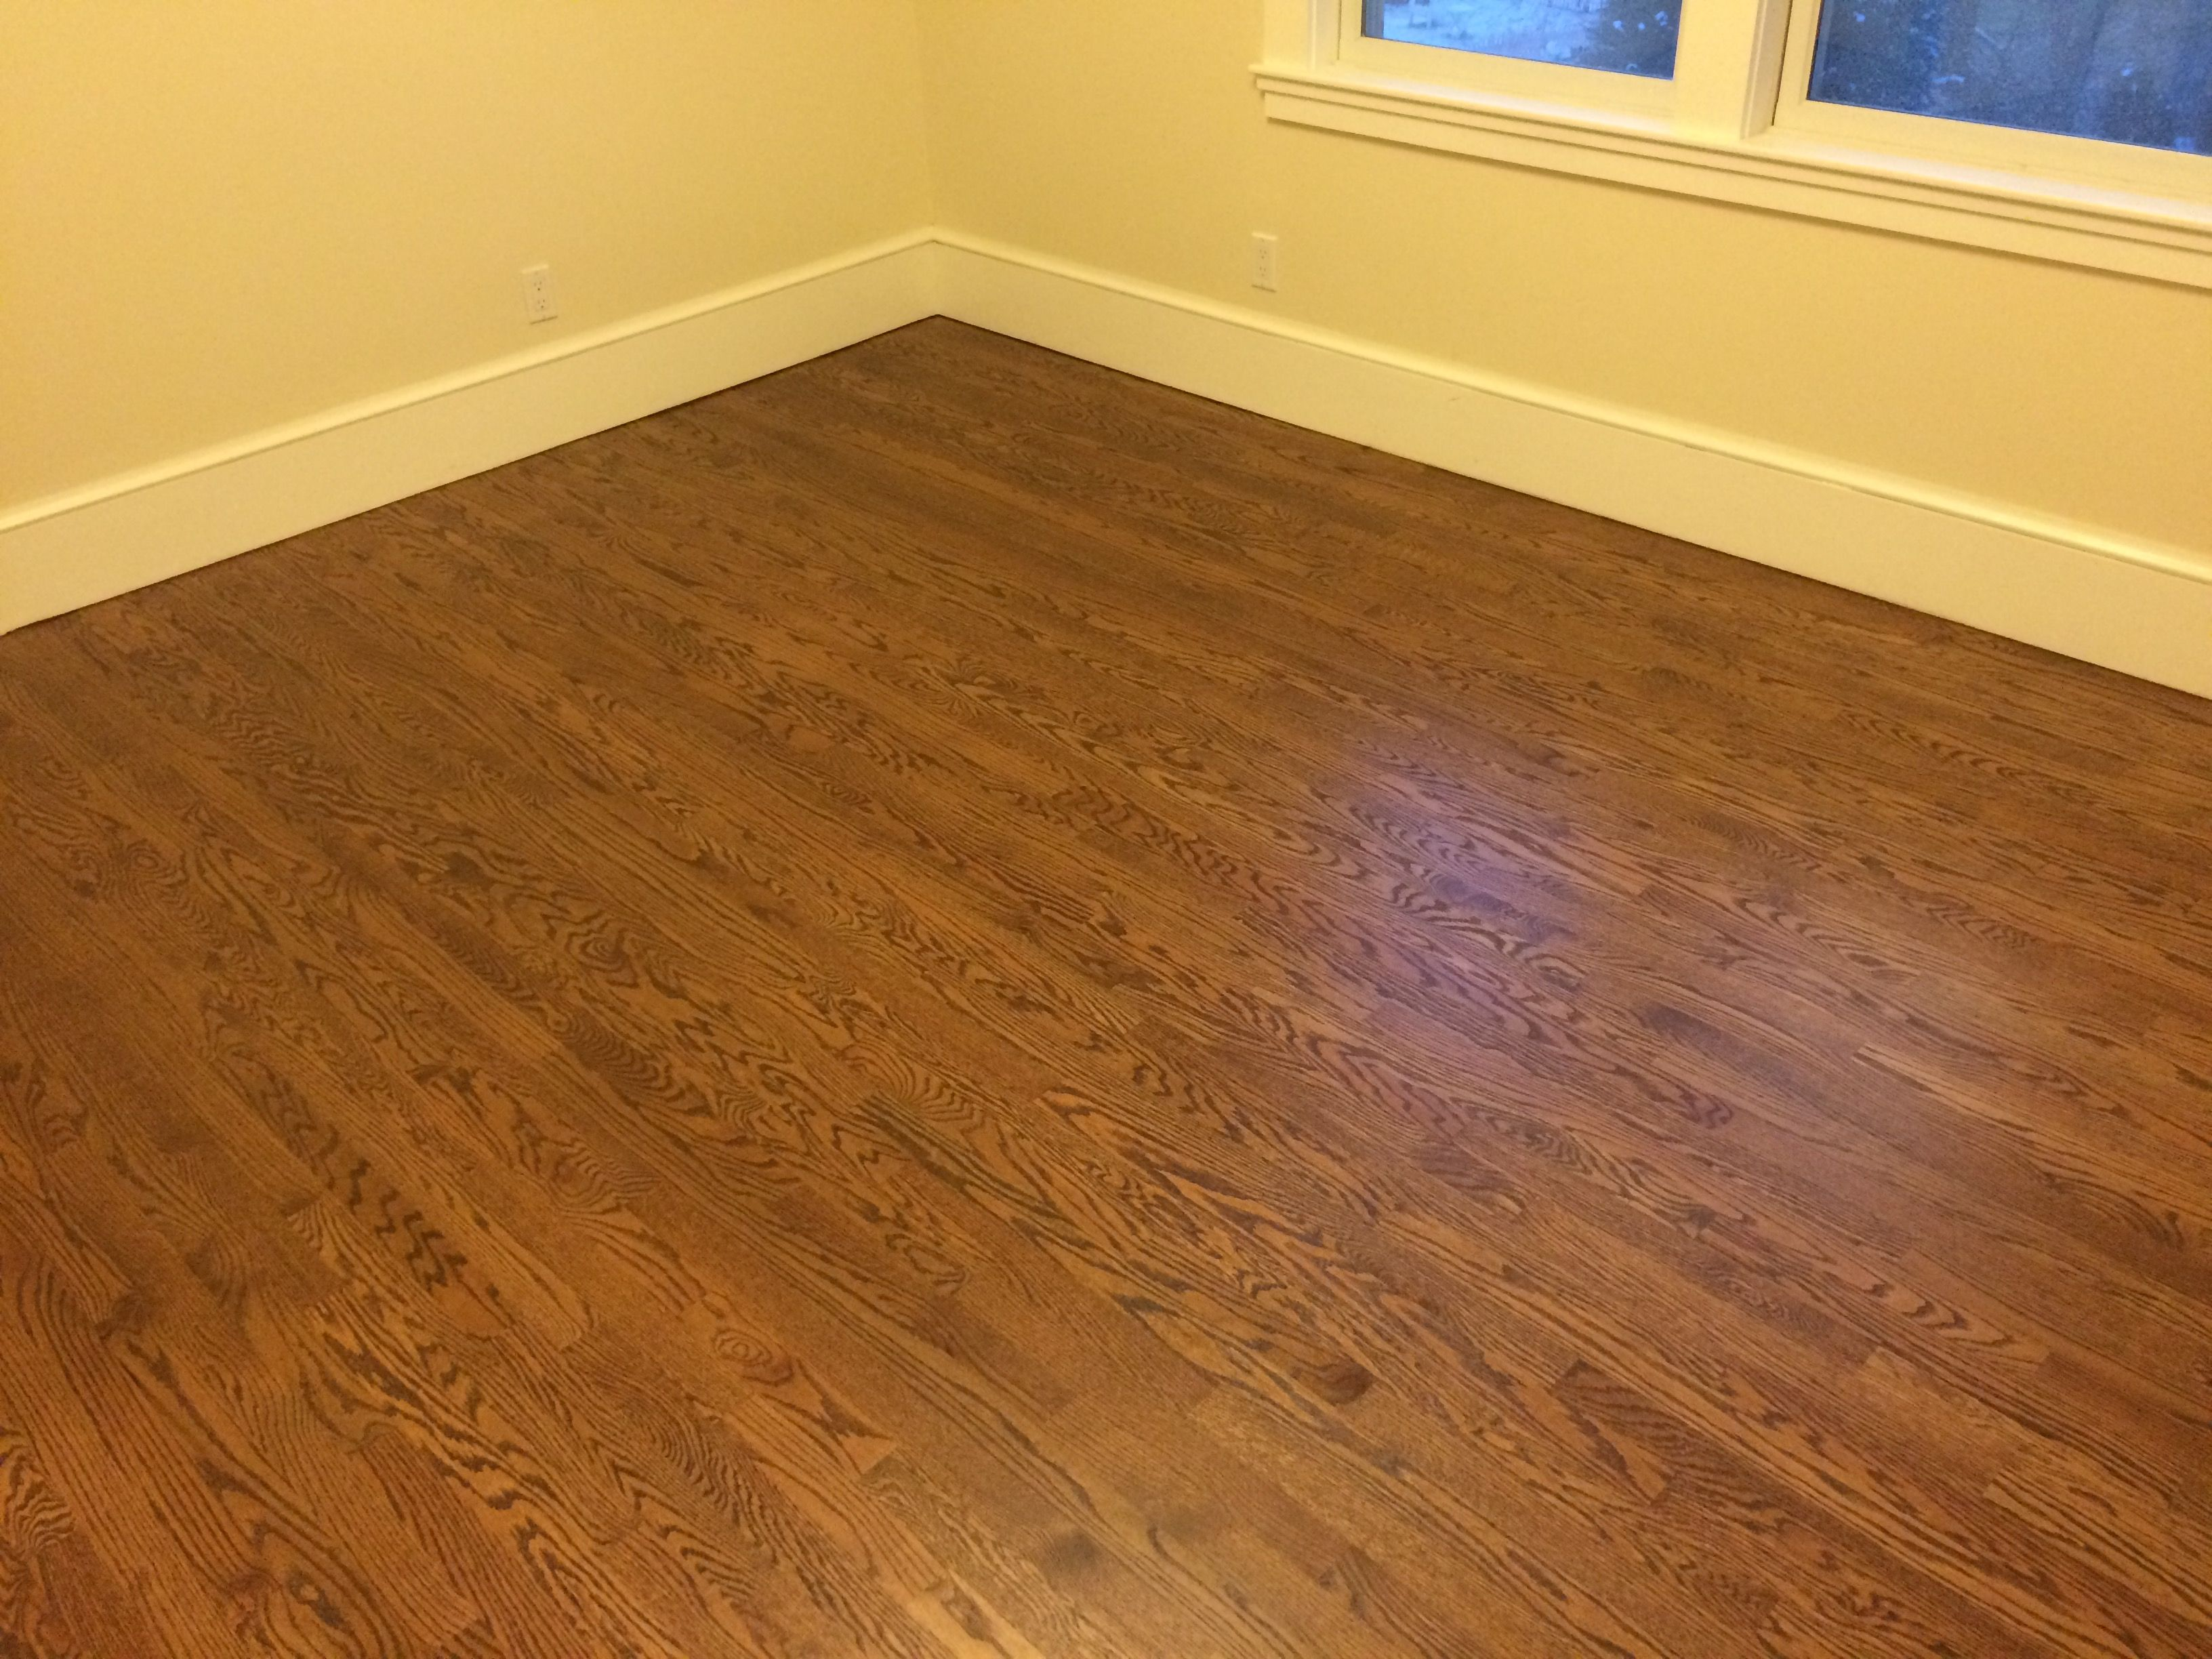 Minwax Special Walnut Over Red Oak Hardwood Floors